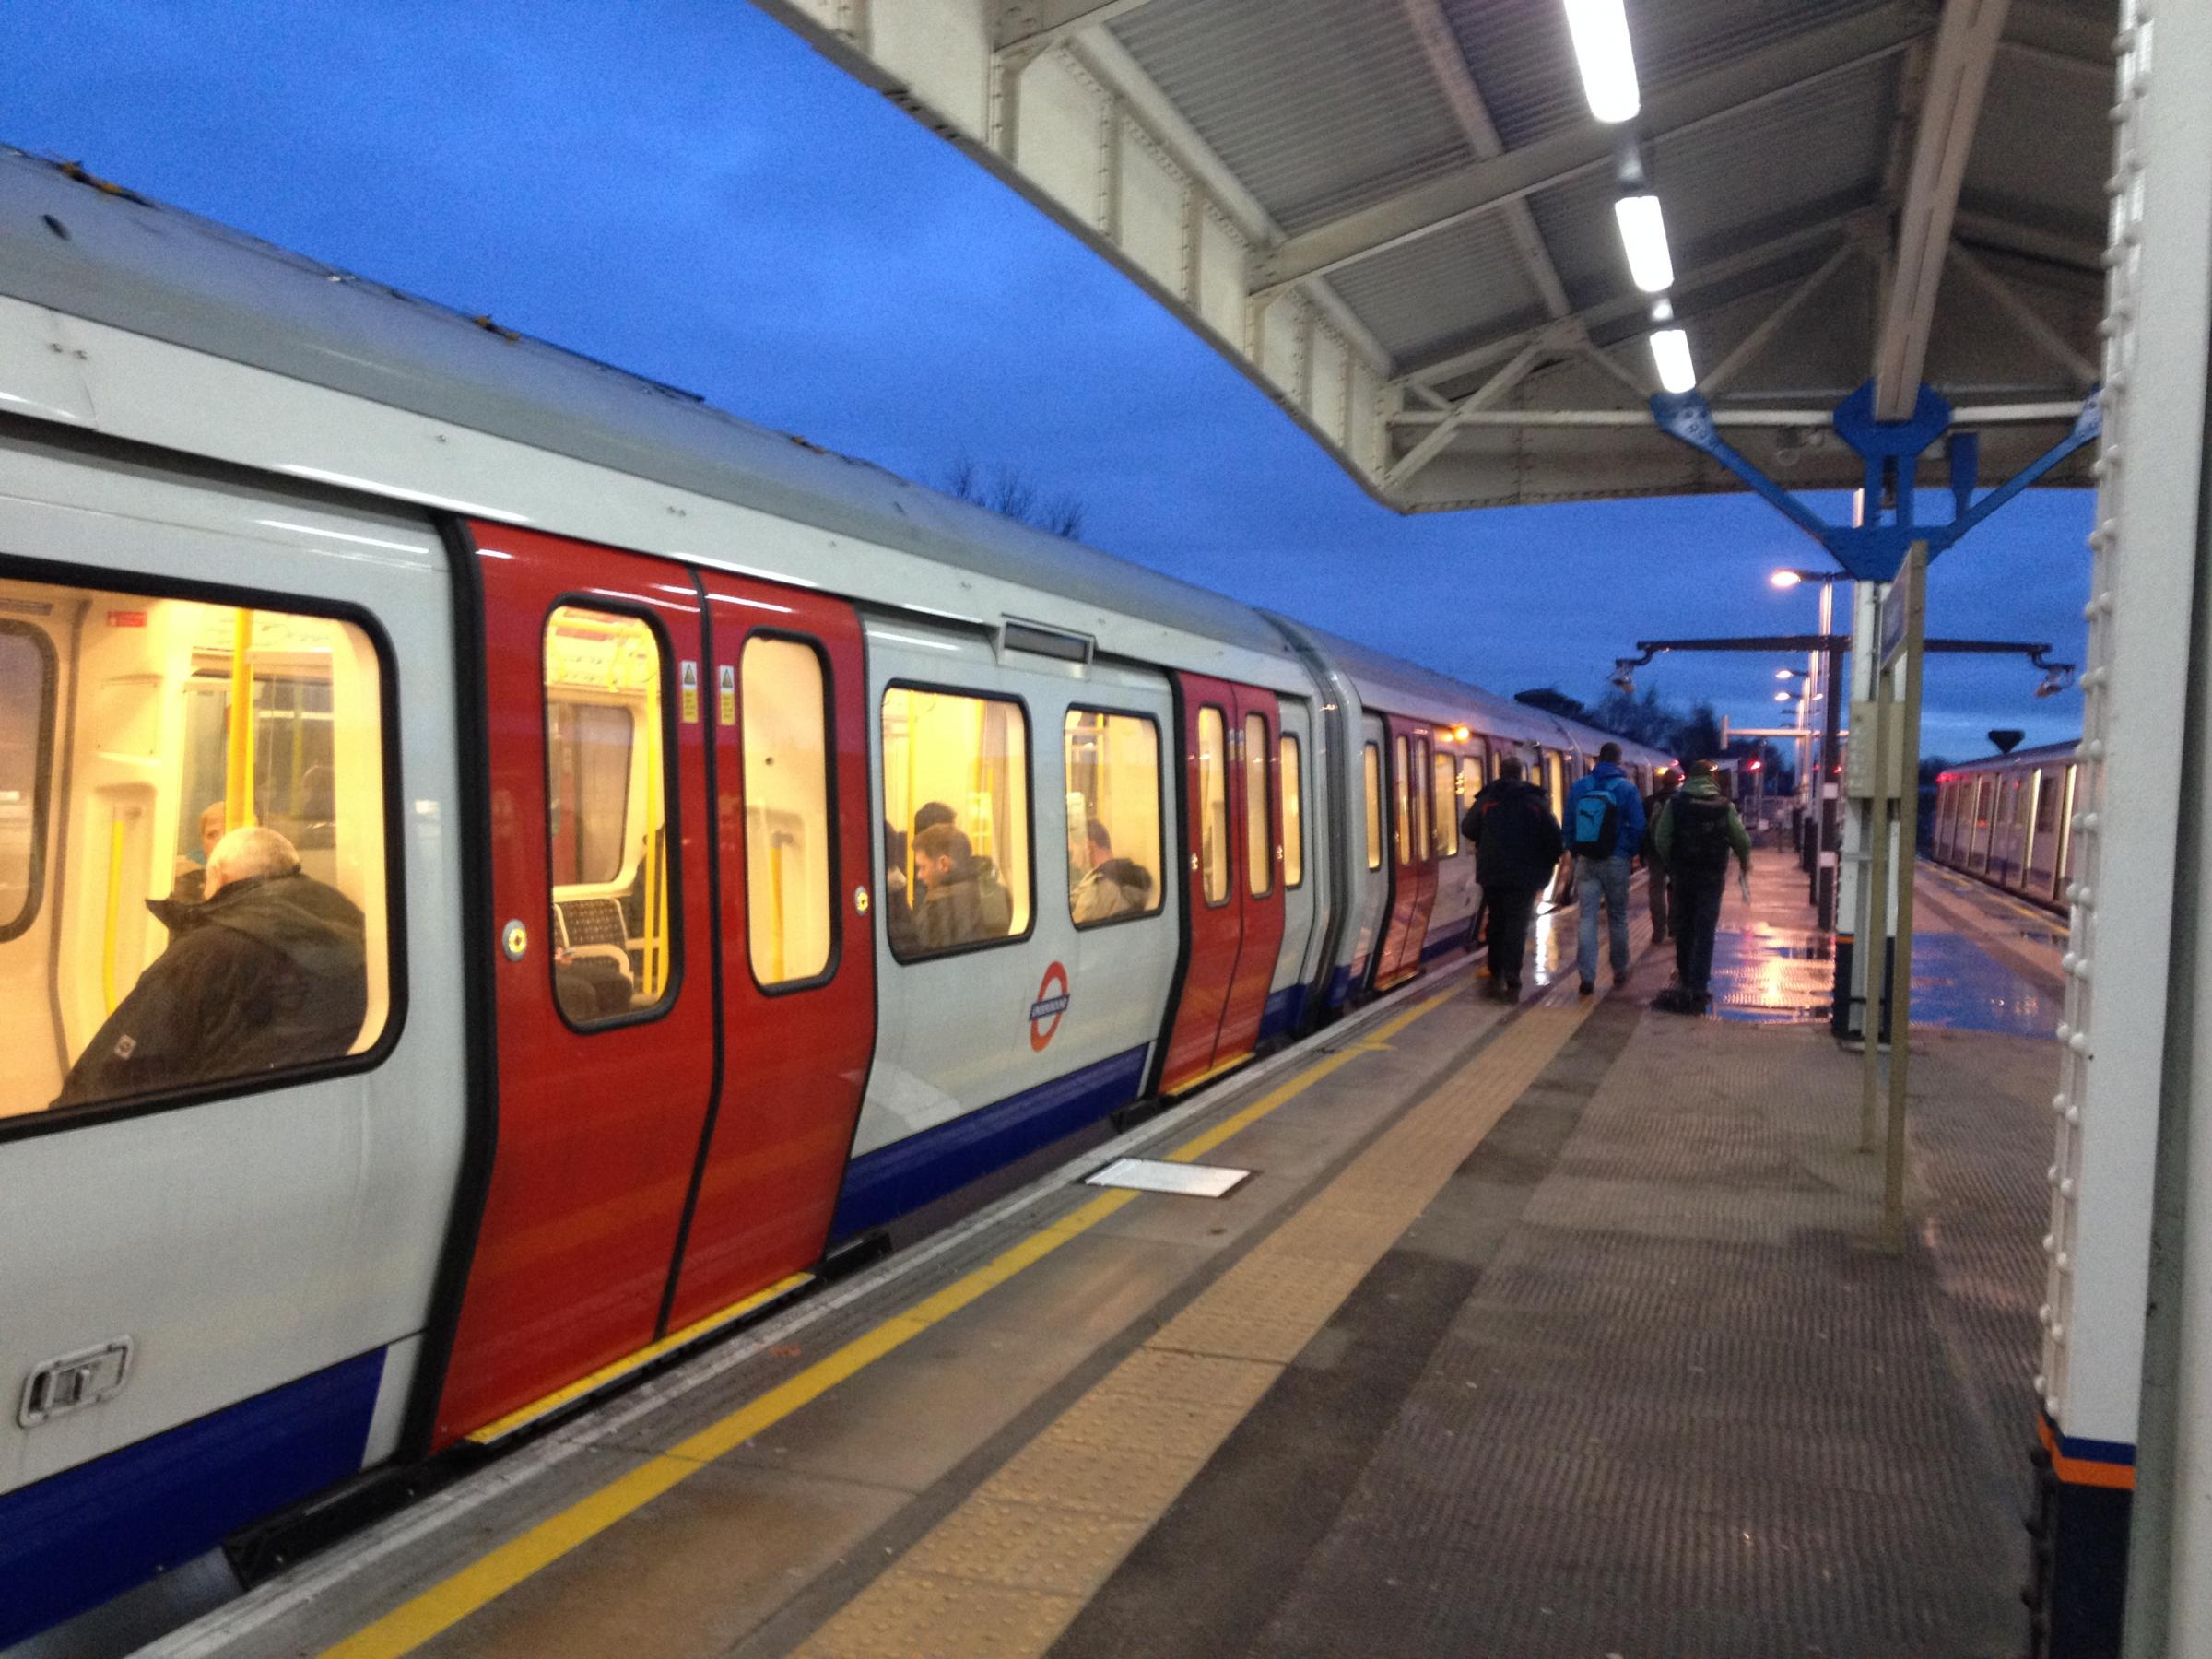 Commuters taking the tube experienced severe delays this morning